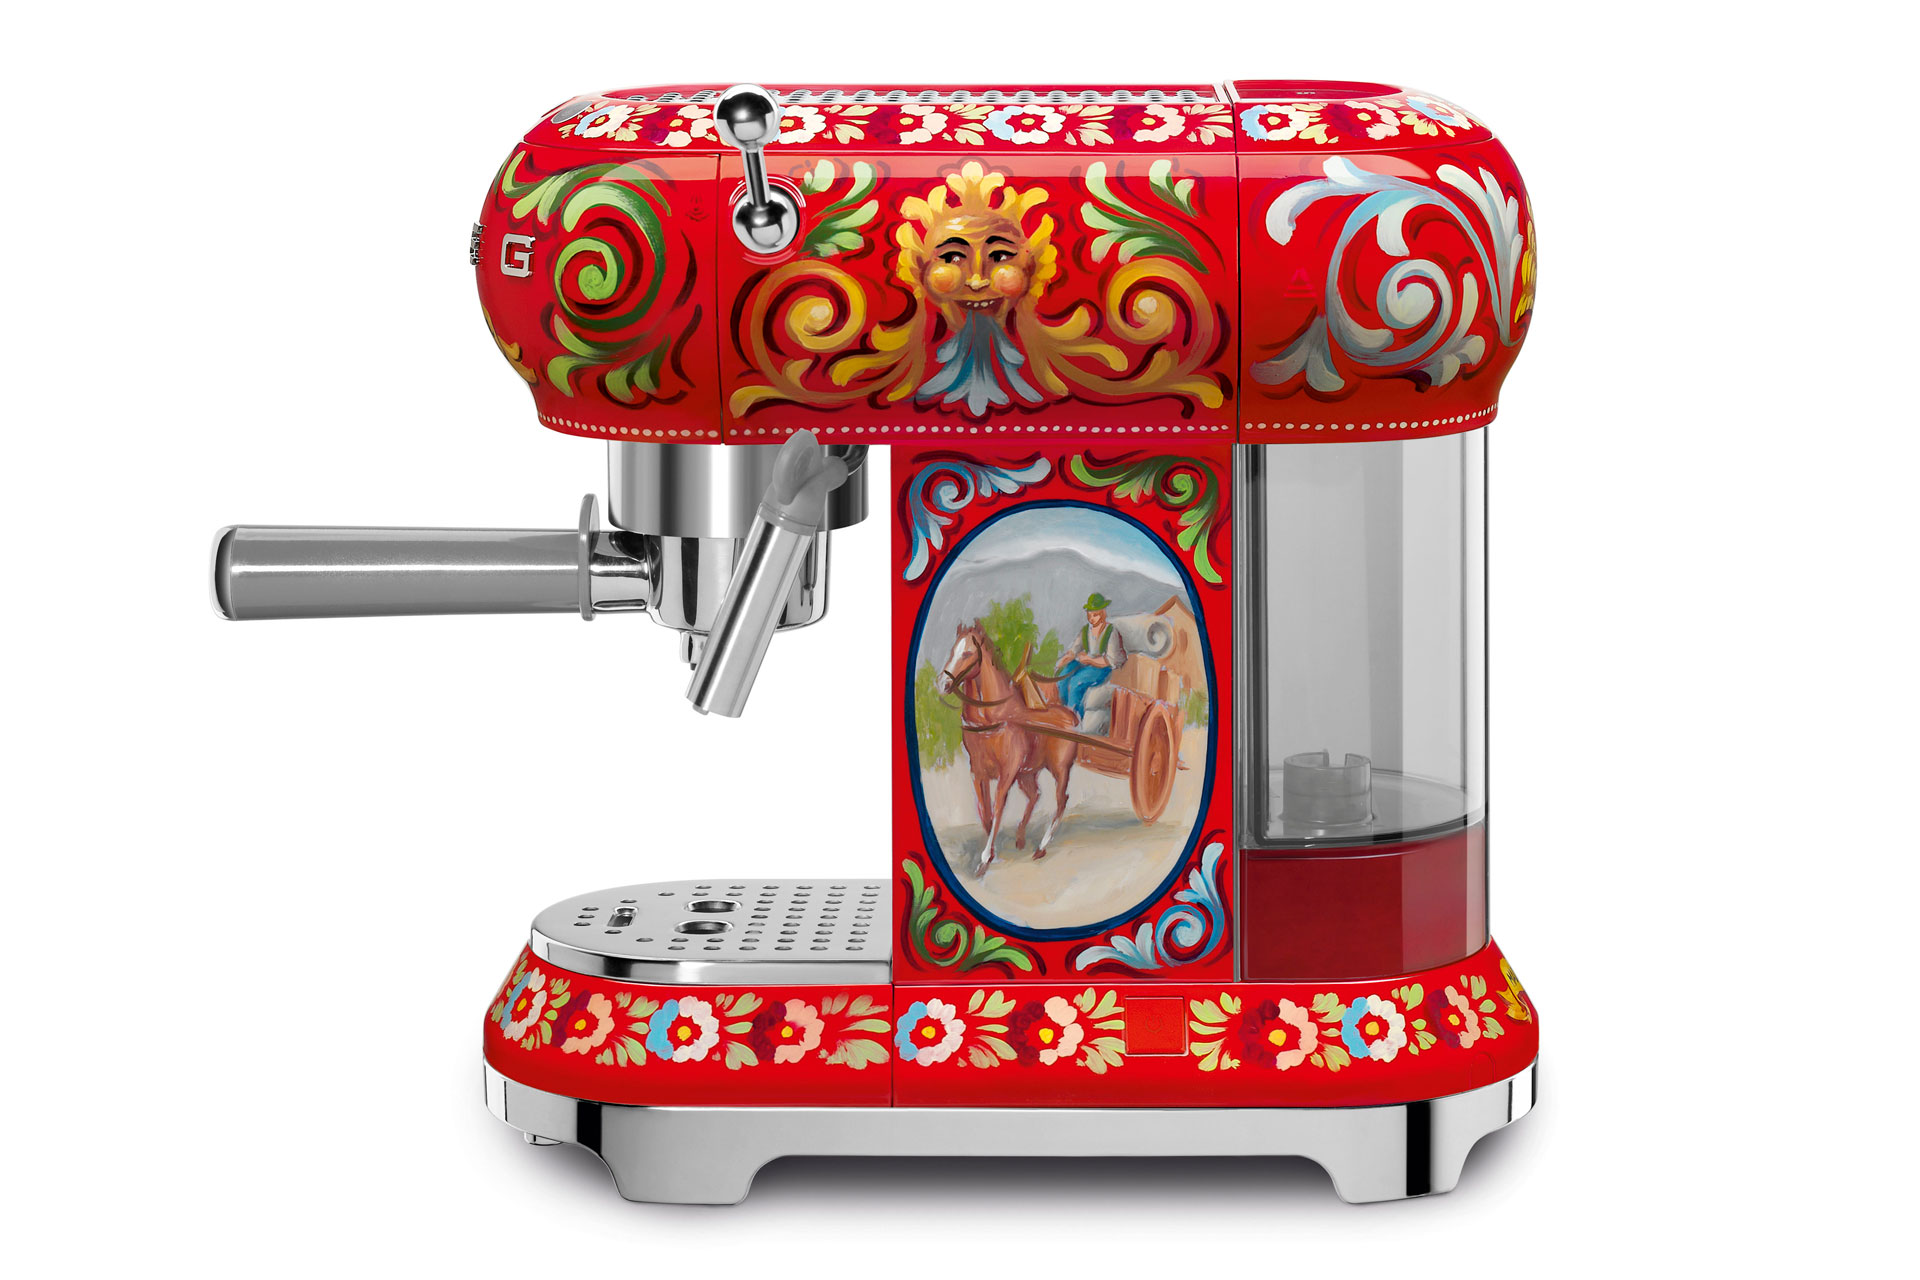 Kitchen Appliances You Want To Have Right Now From Smeg - www.authenticInterior.com Interior design blog